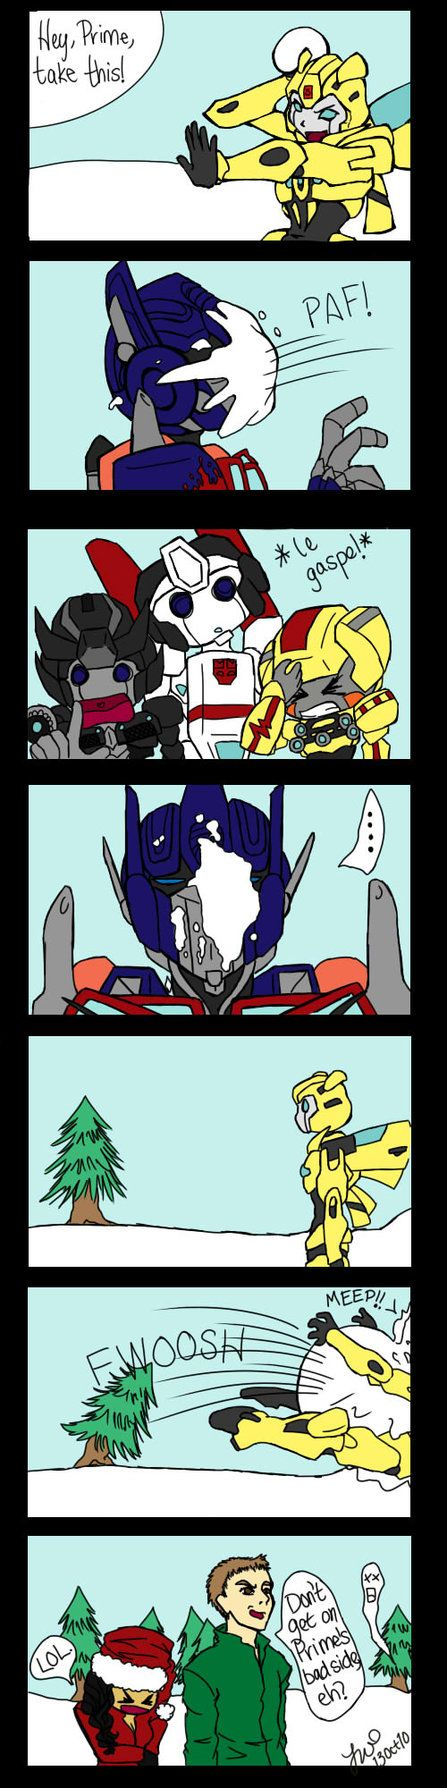 Transformer Snowball Fight by Dubnoreix on DeviantArt